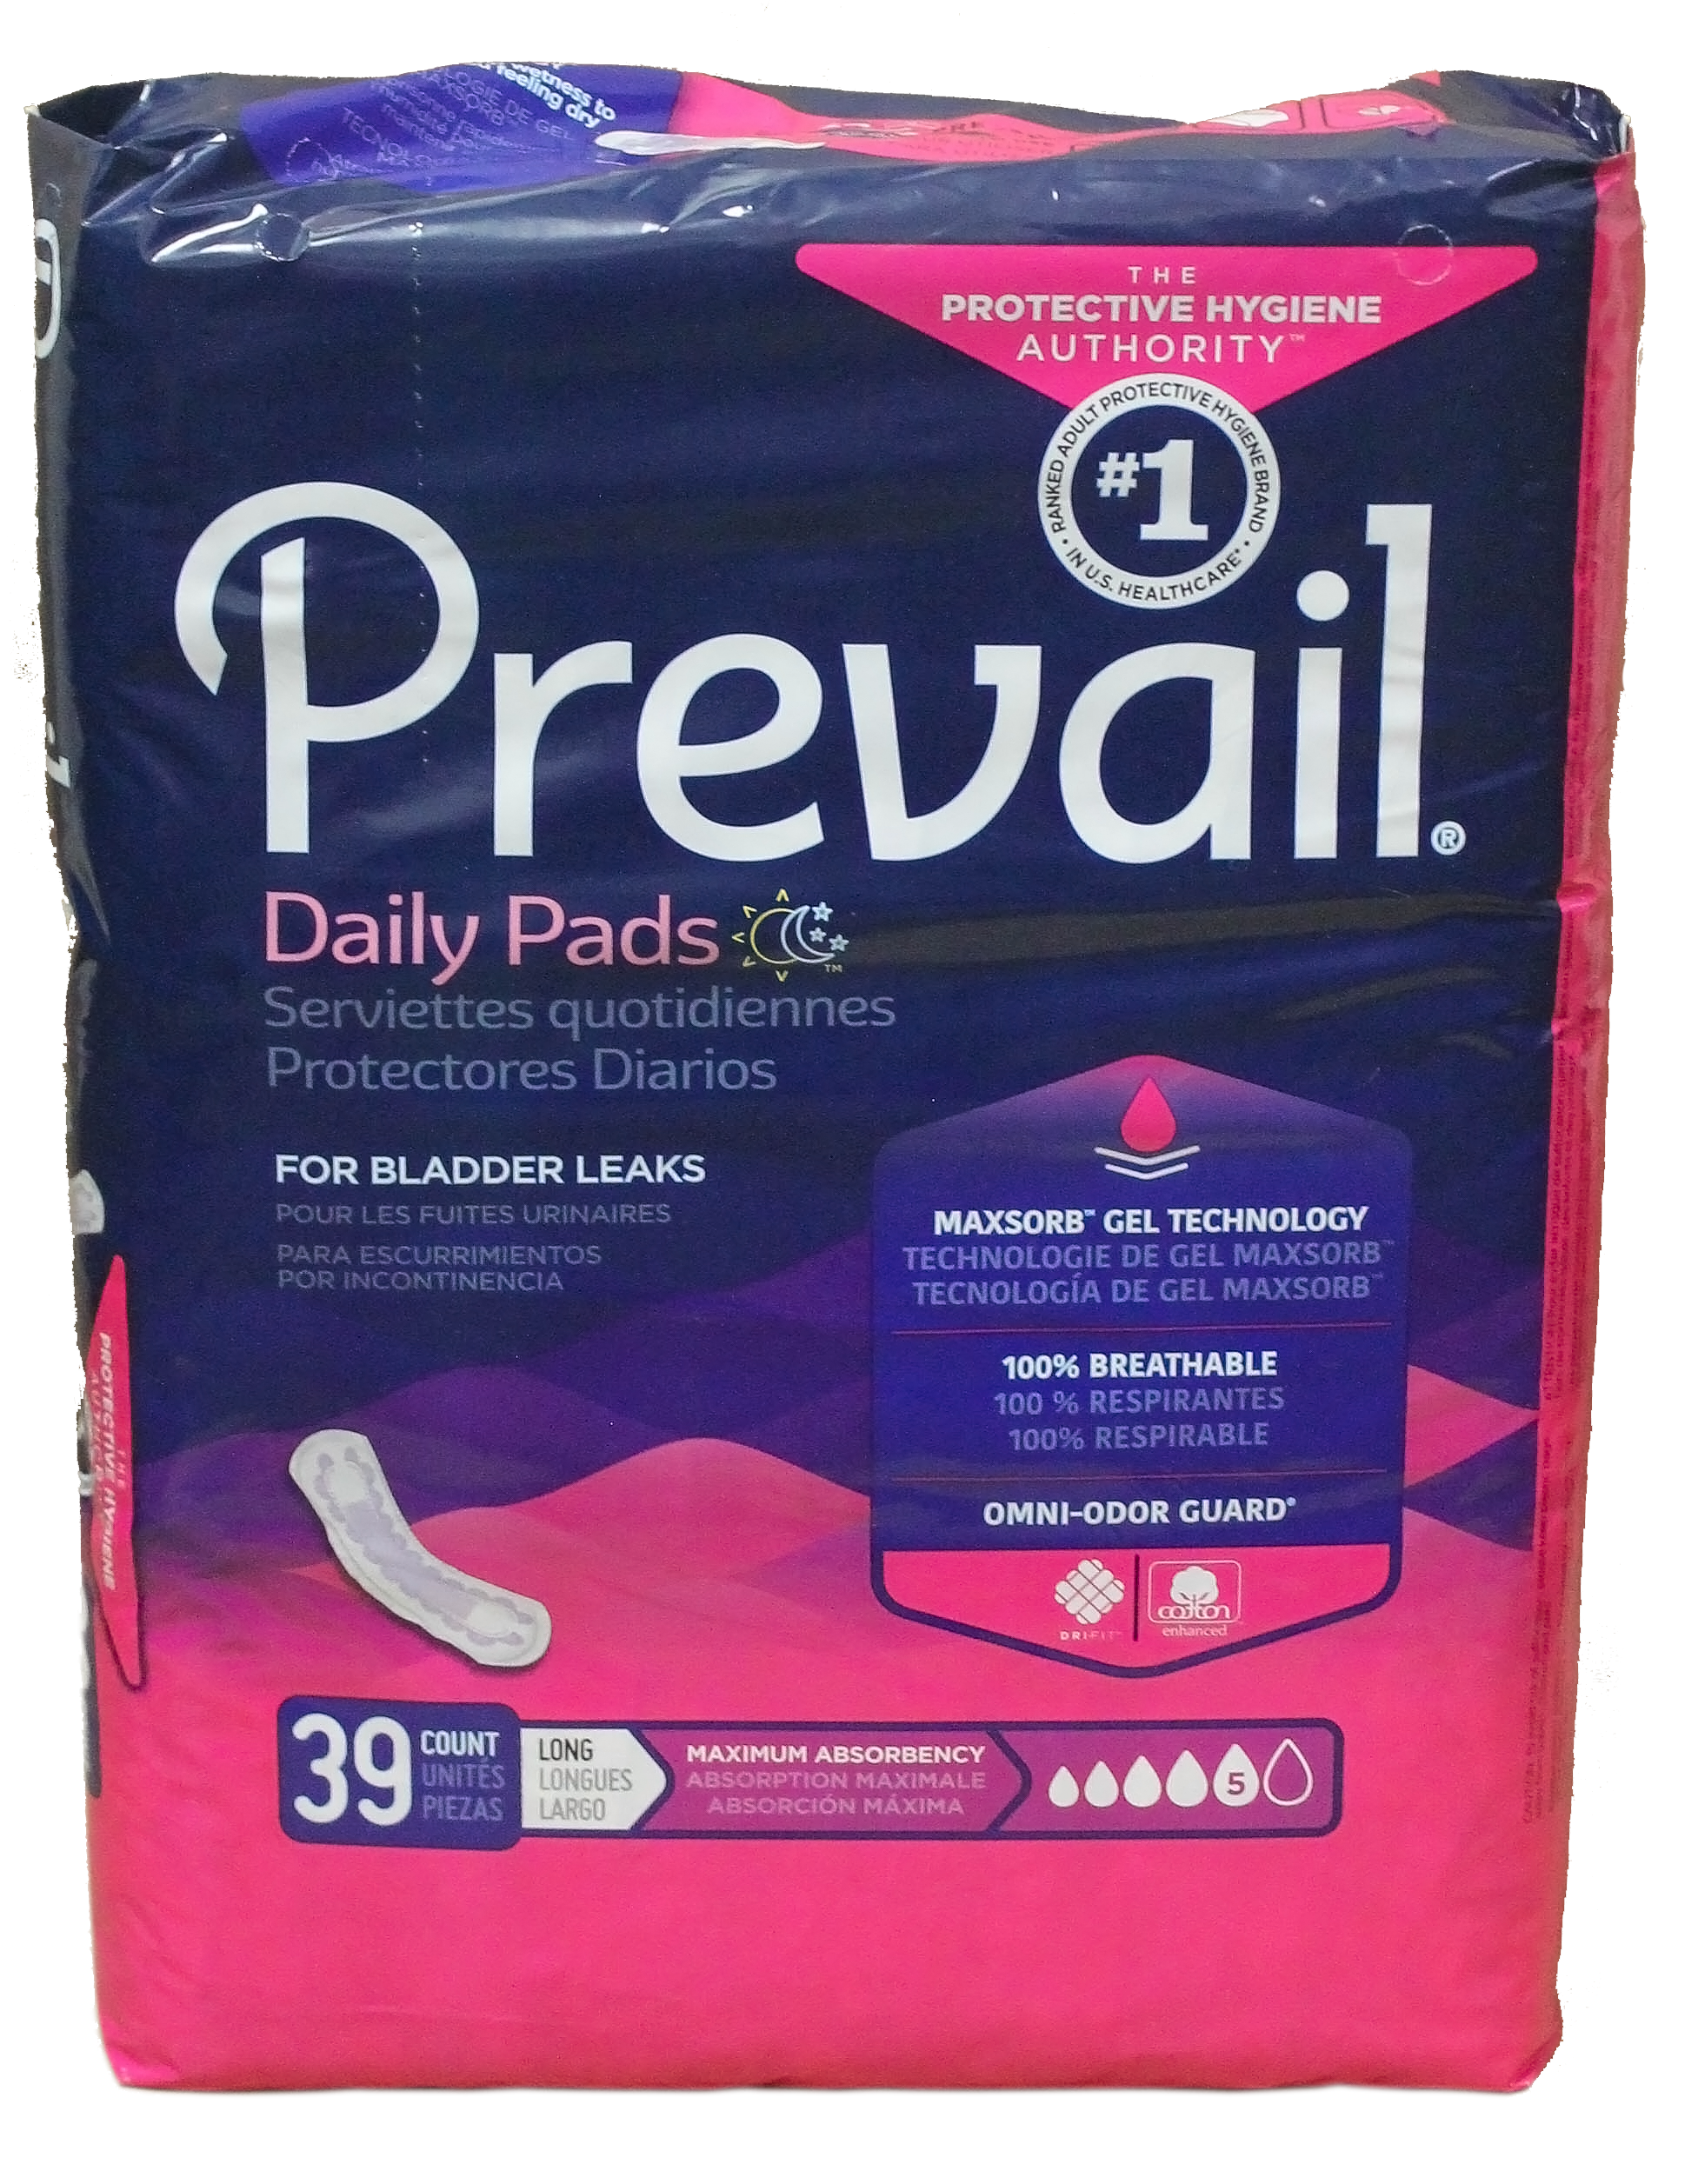 Prevail Daily Pads max absorbency